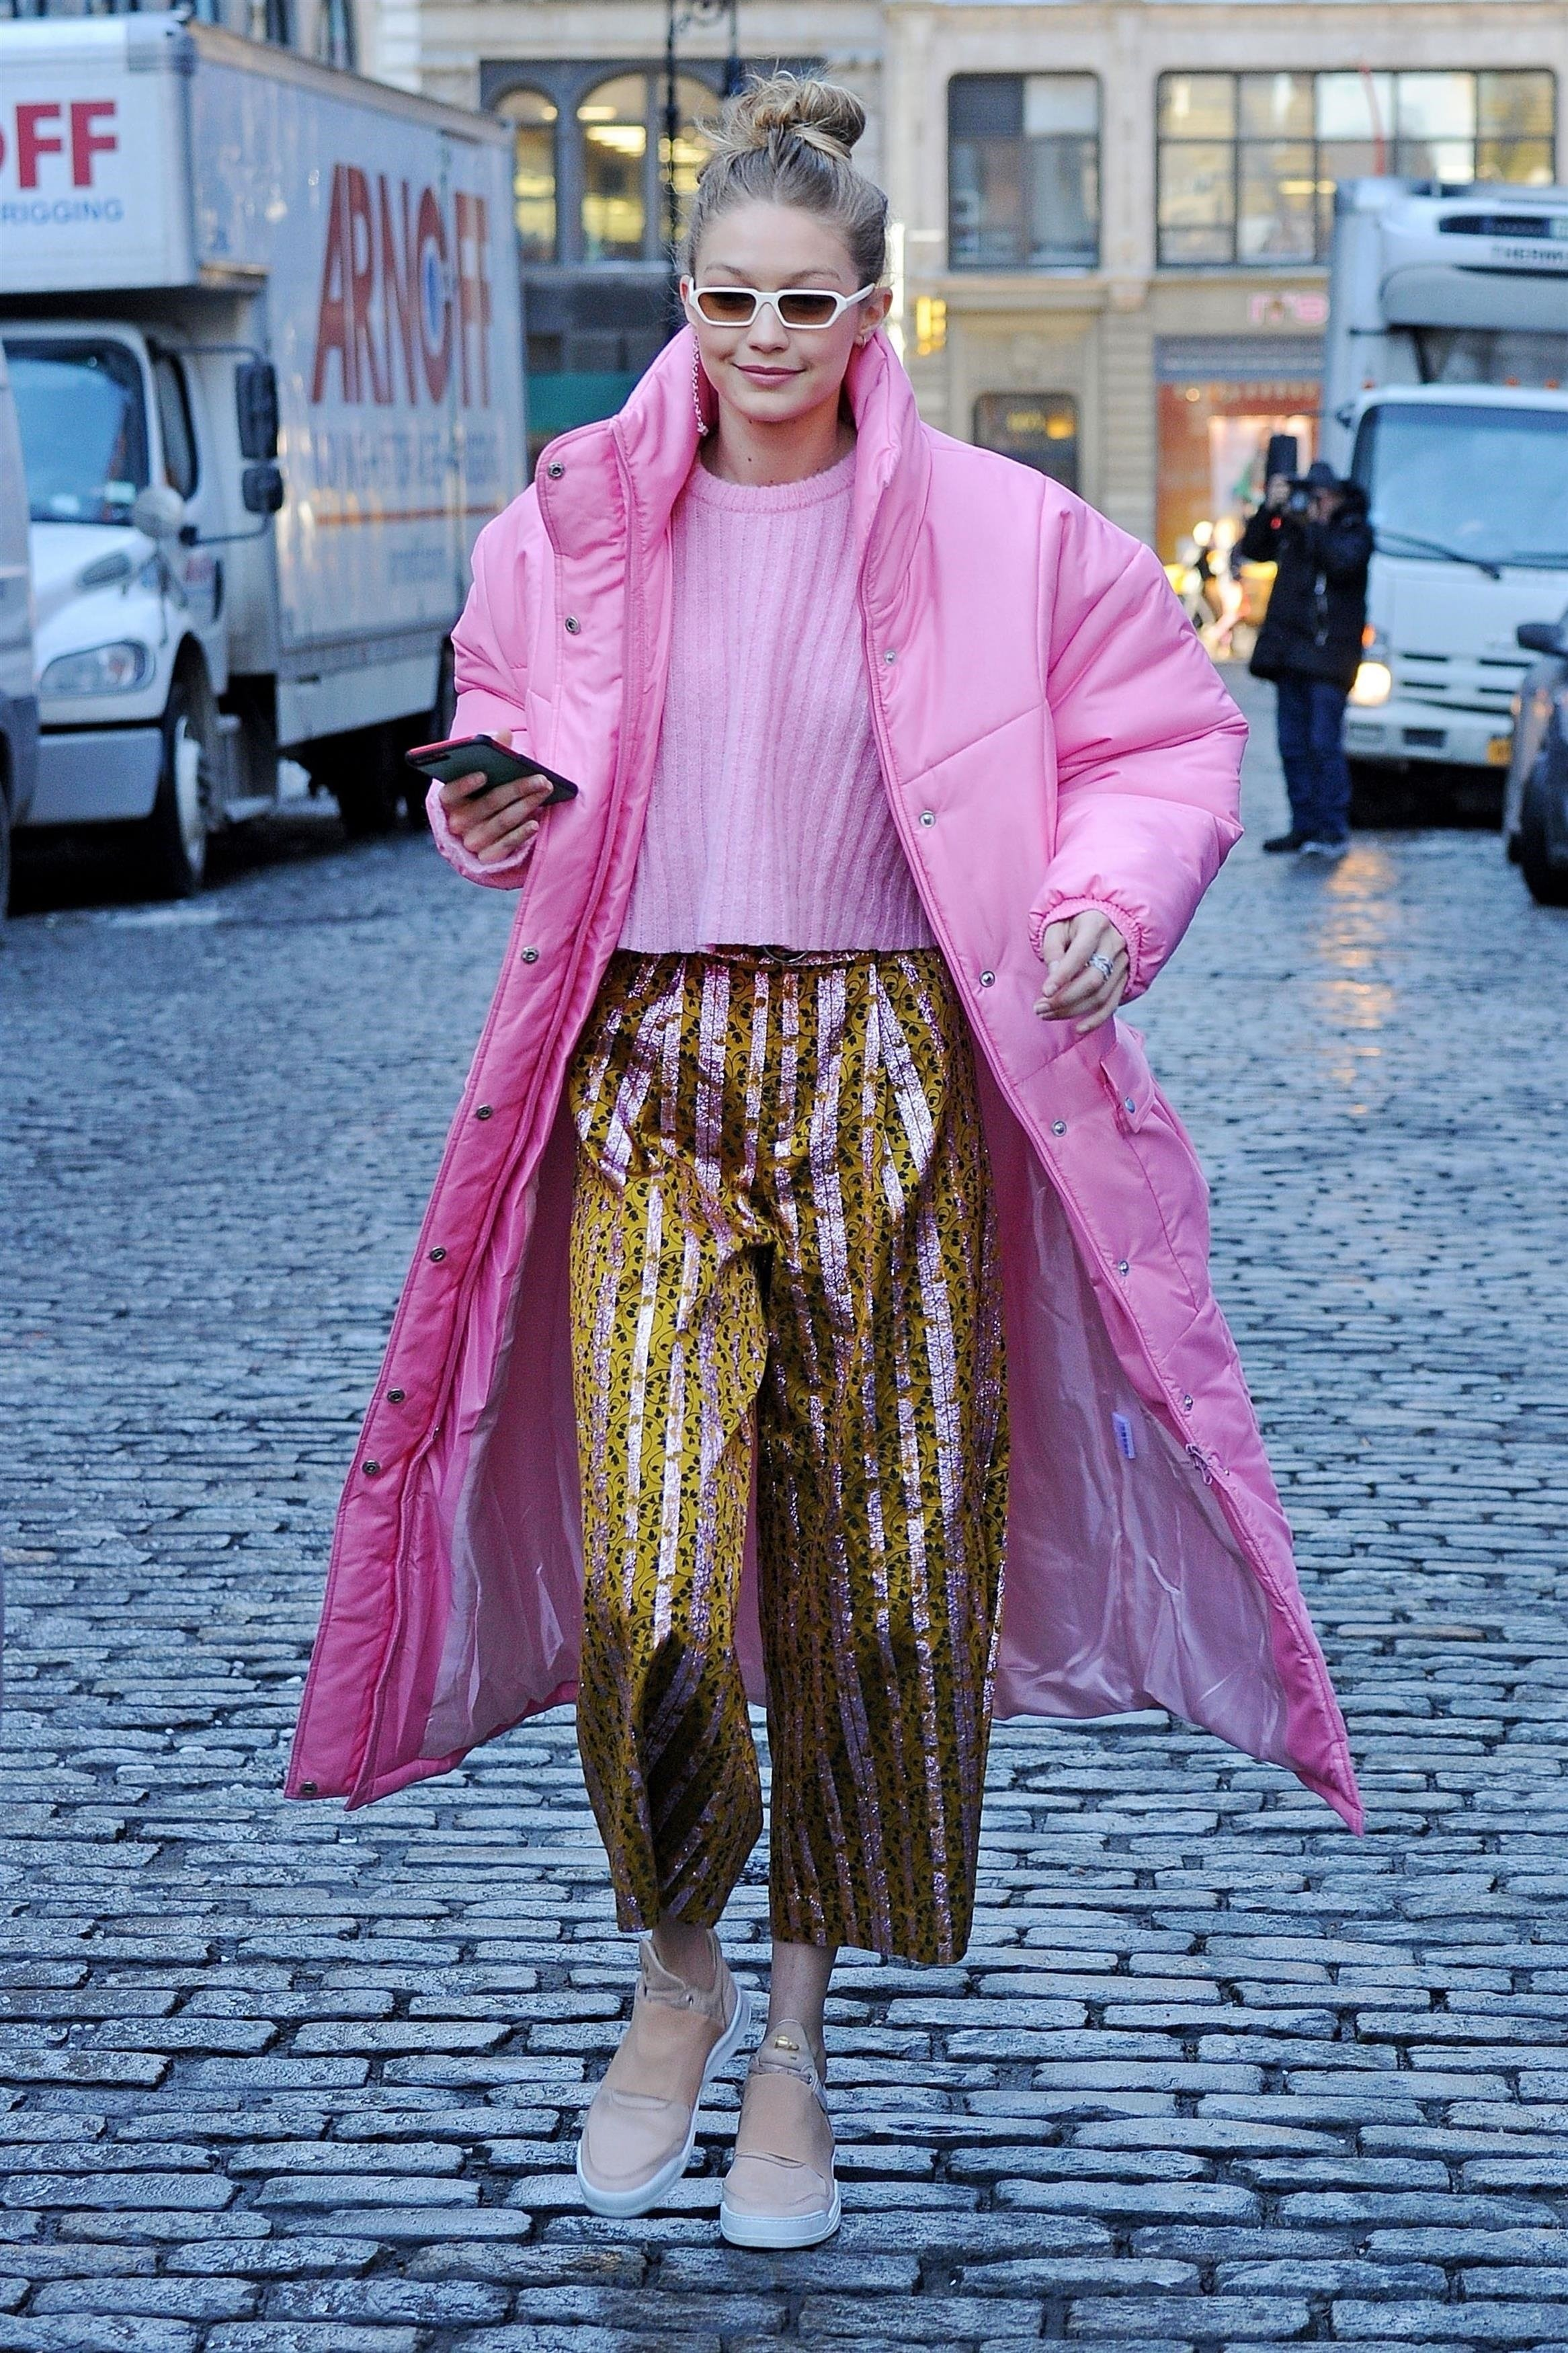 New York, NY  - Model Gigi Hadid steps out for French food for lunch at Little Prince in New York. Gigi was rocking a Pink puffy coat over a pink sweater and paired with gold striped pants.  Pictured: Gigi Hadid  BACKGRID USA 9 JANUARY 2018, Image: 359705399, License: Rights-managed, Restrictions: , Model Release: no, Credit line: Profimedia, AKM-GSI